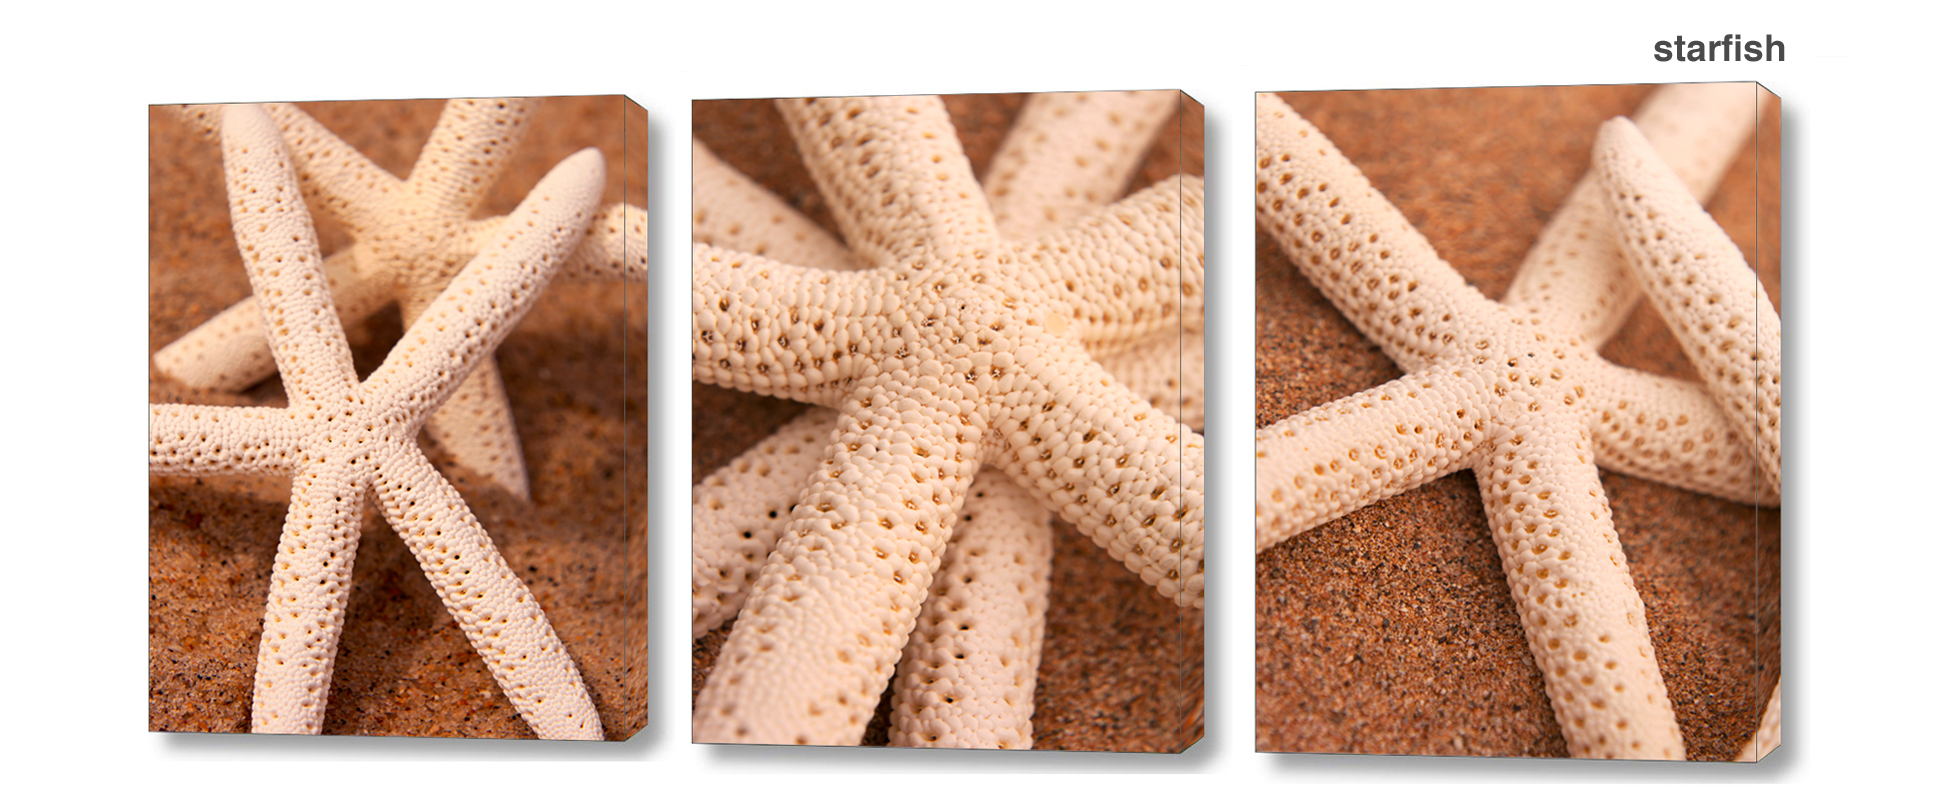 starfish series - Floral Series Wall Decor Macro Photography Matted & Giclée Canvas Prints